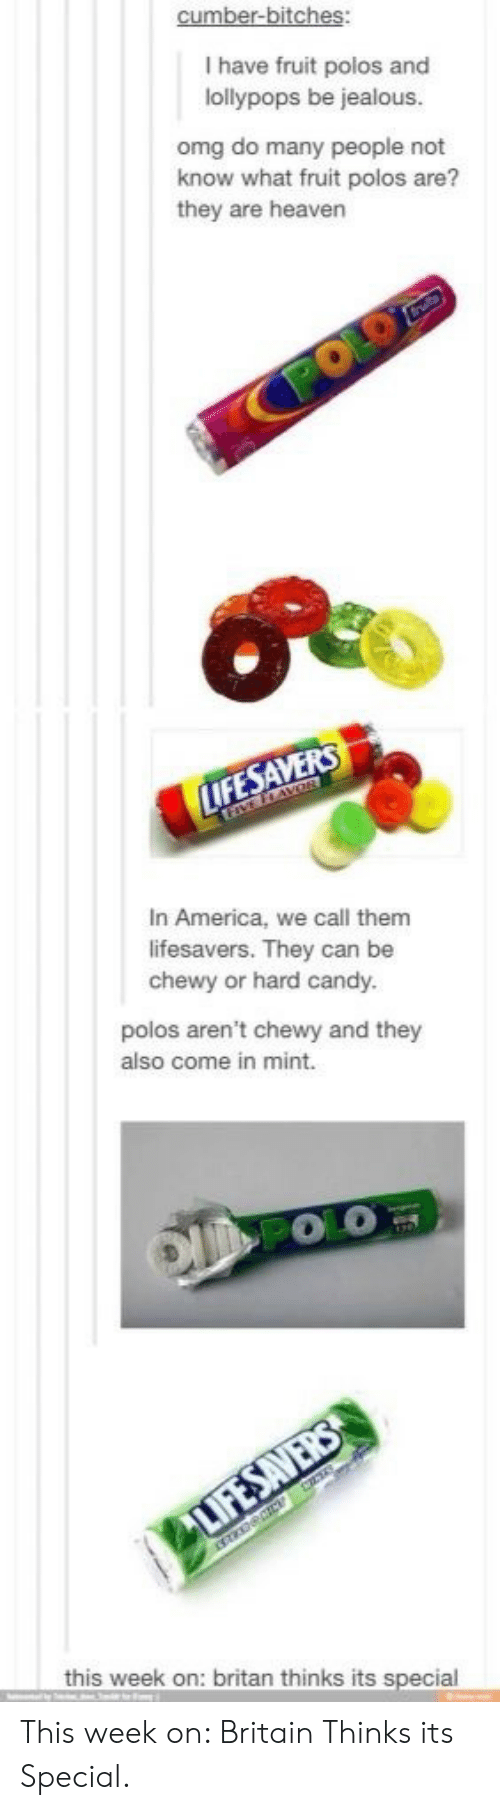 America, Candy, and Heaven: I have fruit polos and  lollypops be jealous  omg do many people not  know what fruit polos are?  they are heaven  In America, we call them  lifesavers. They can be  chewy or hard candy.  polos aren't chewy and they  also come in mint.  this week on: britan thinks its special This week on: Britain Thinks its Special.